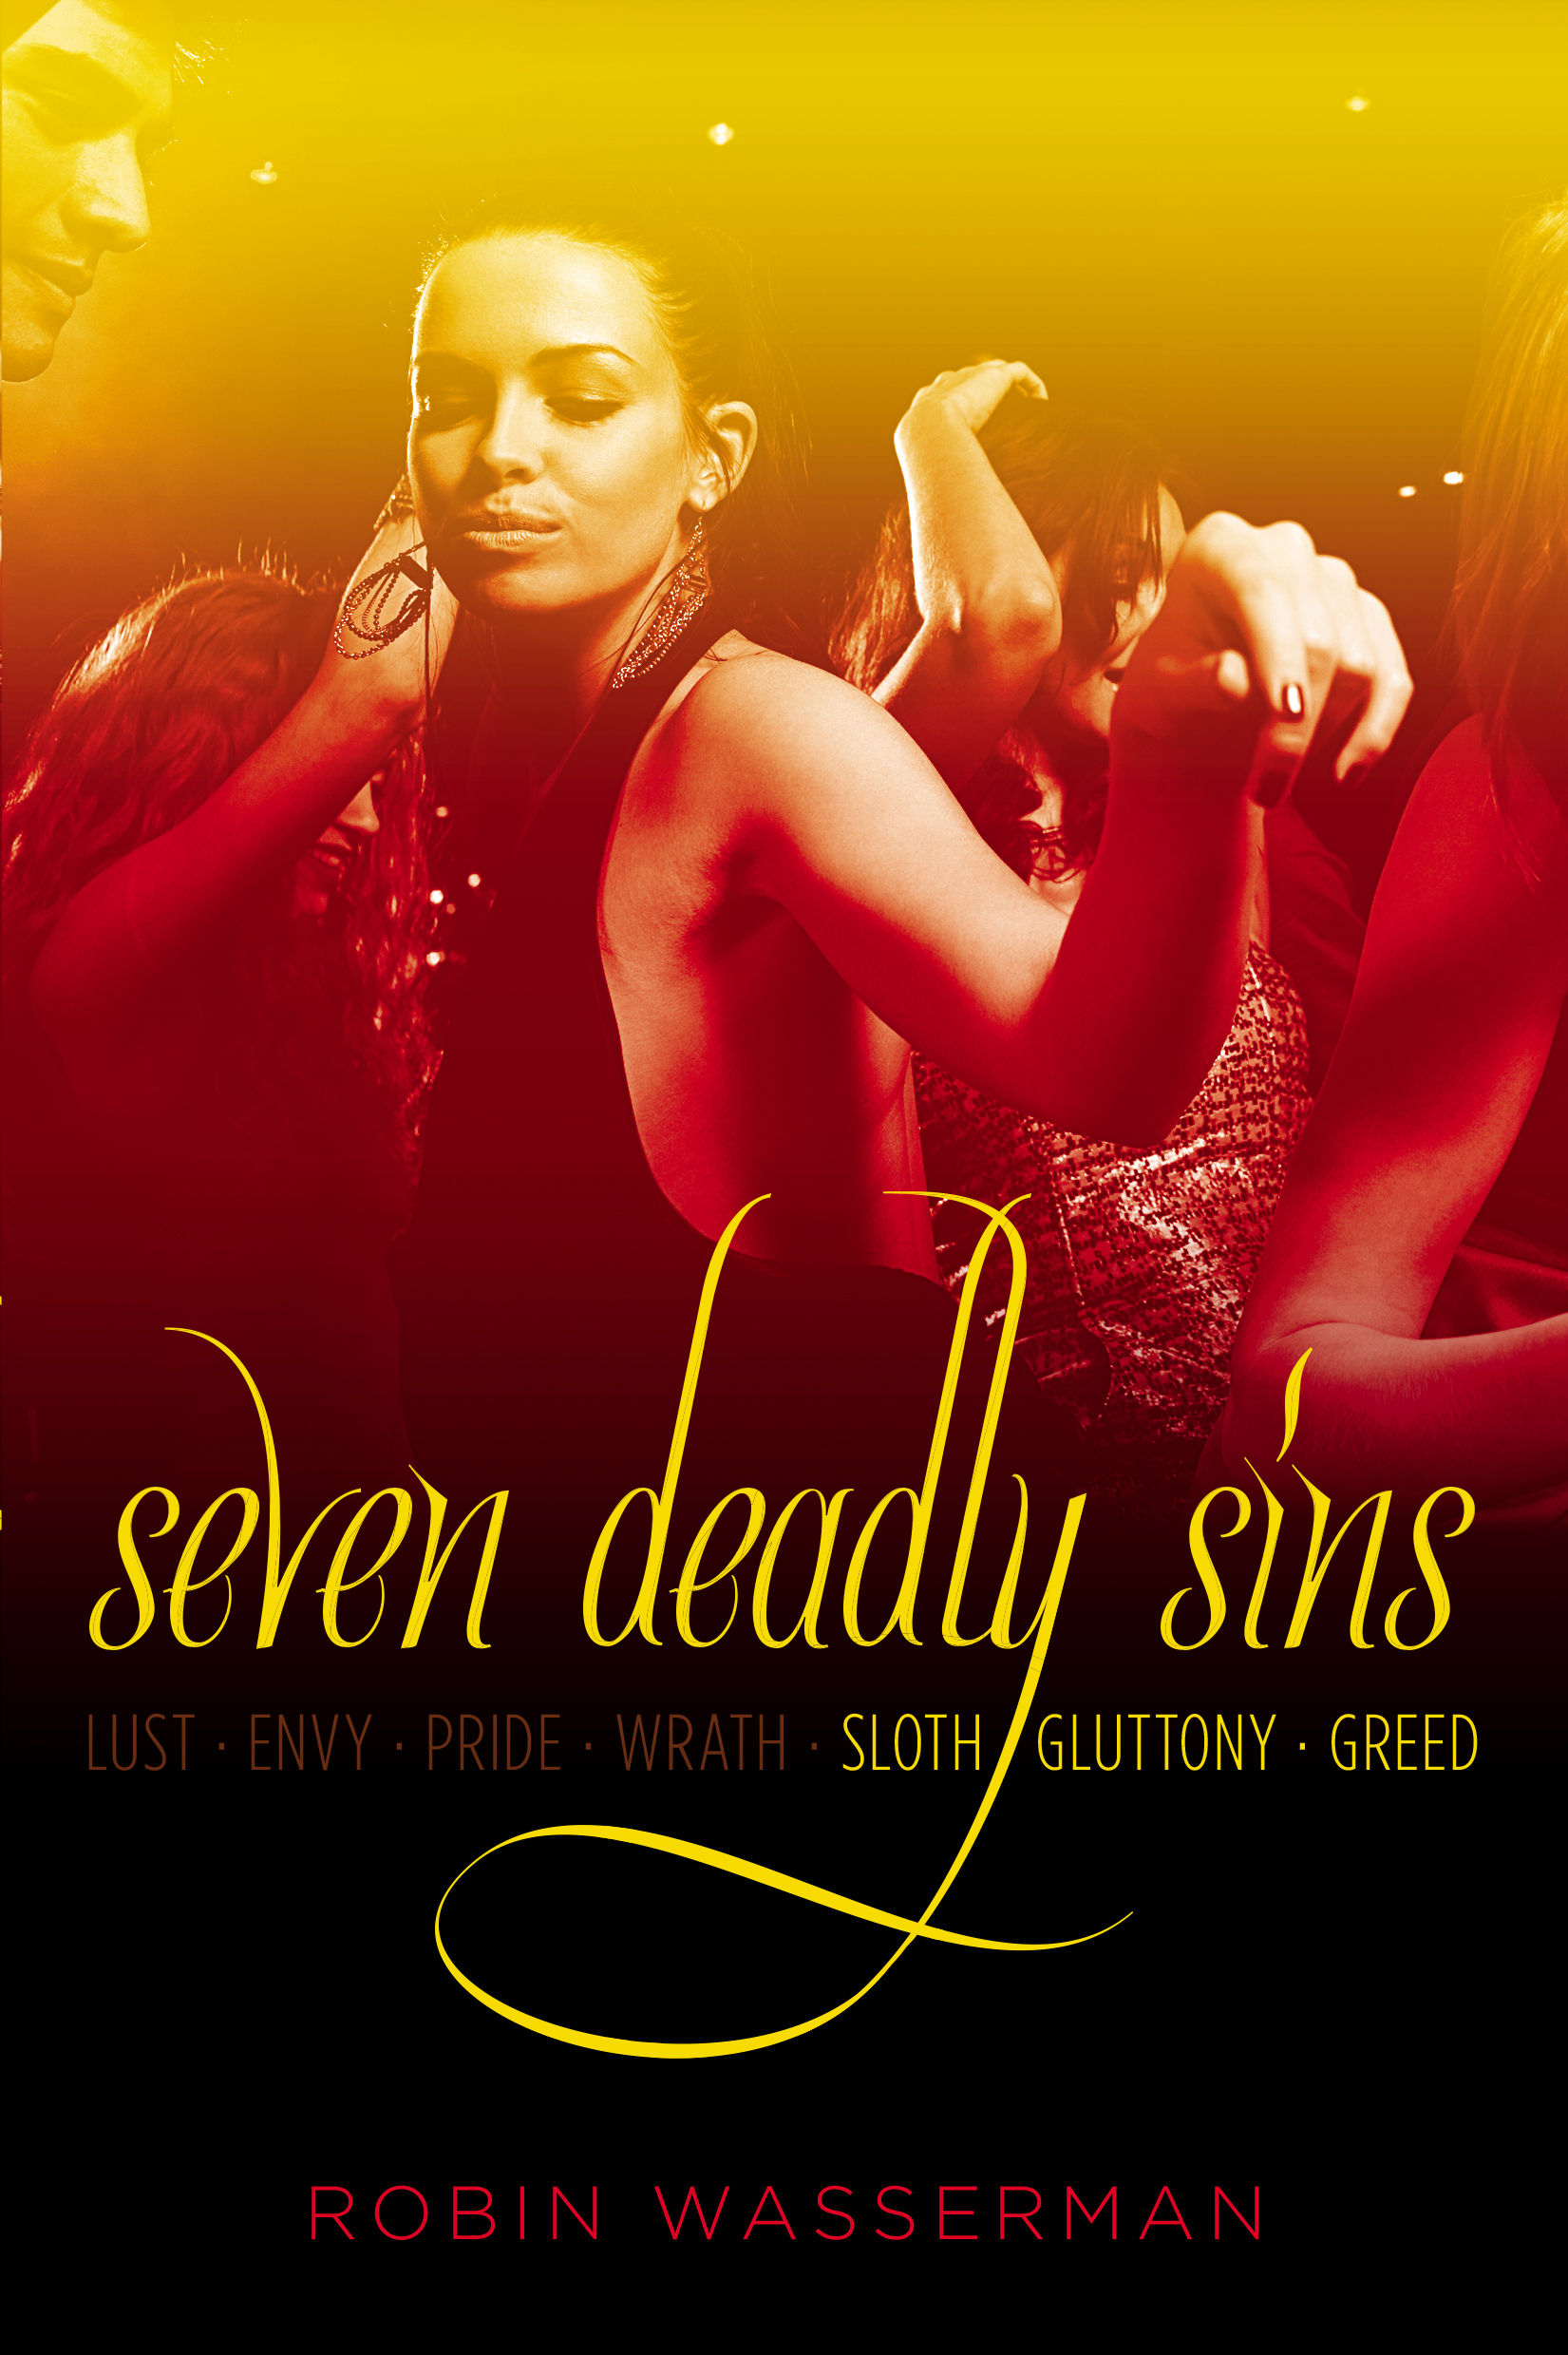 seven deadly silioqueys macbeth Macbeth is a 2015 british-french film tragedy based on william shakespeare's  play of the  anton capital entertainment creative scotland dmc film film4  see-saw  principal photography took place over seven weeks in england and .